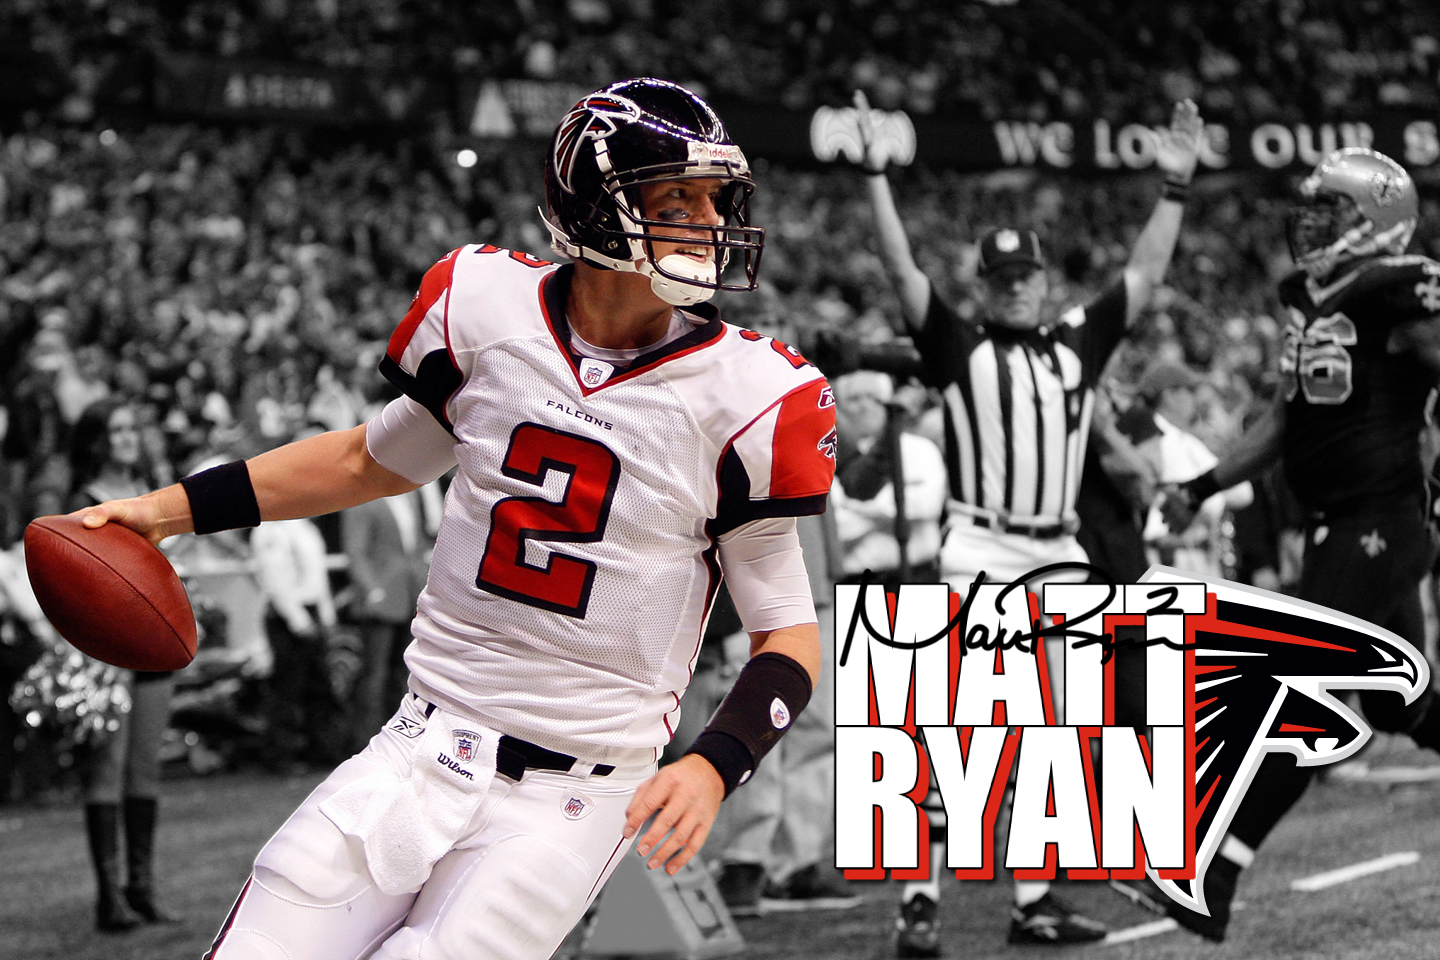 Atlanta Falcons Desktop Wallpapers: Atlanta Falcons Desktop Wallpaper